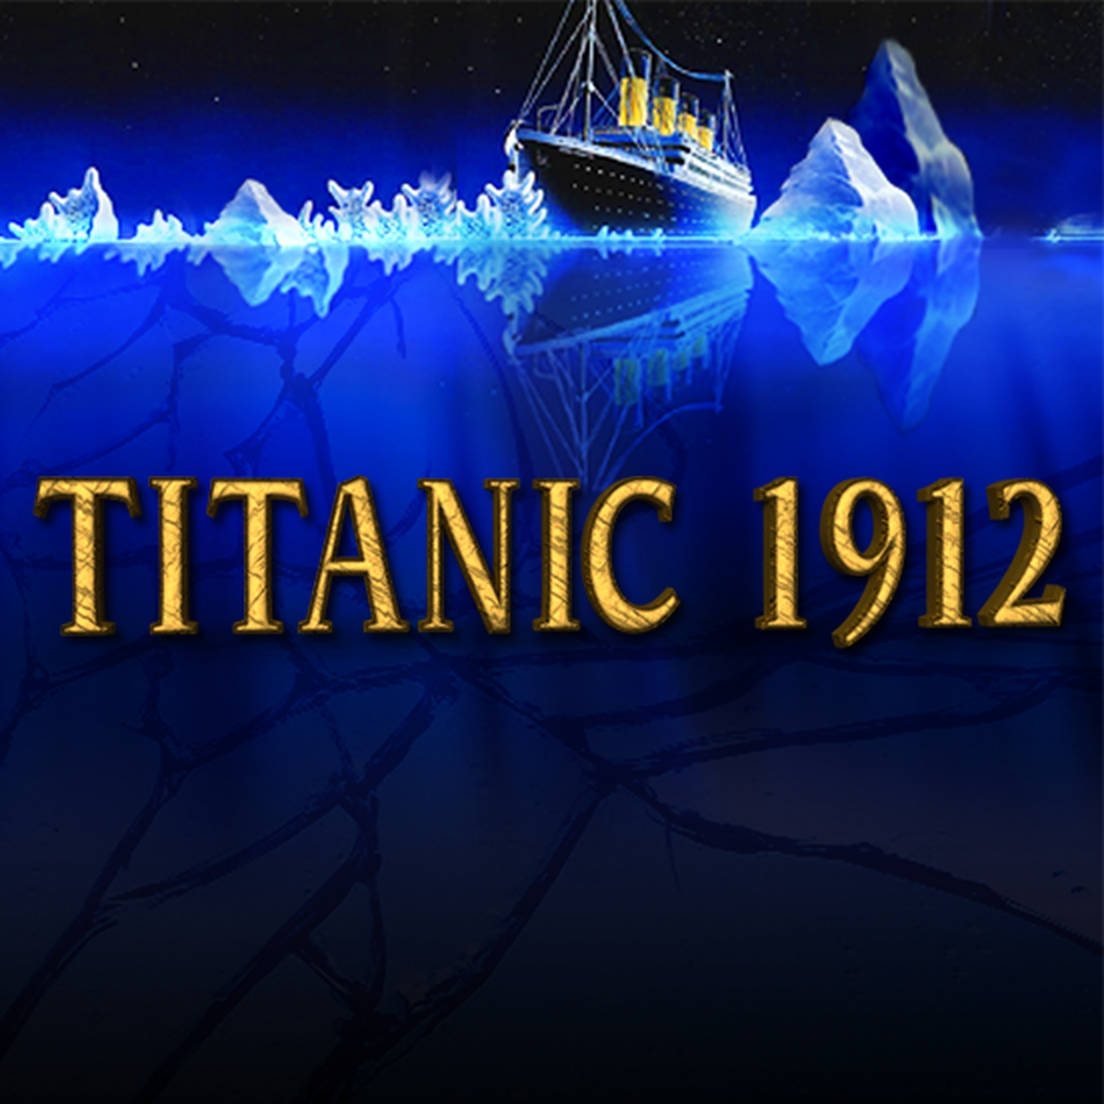 The Titanic 1912 Online Slot Demo Game by Capecod Gaming